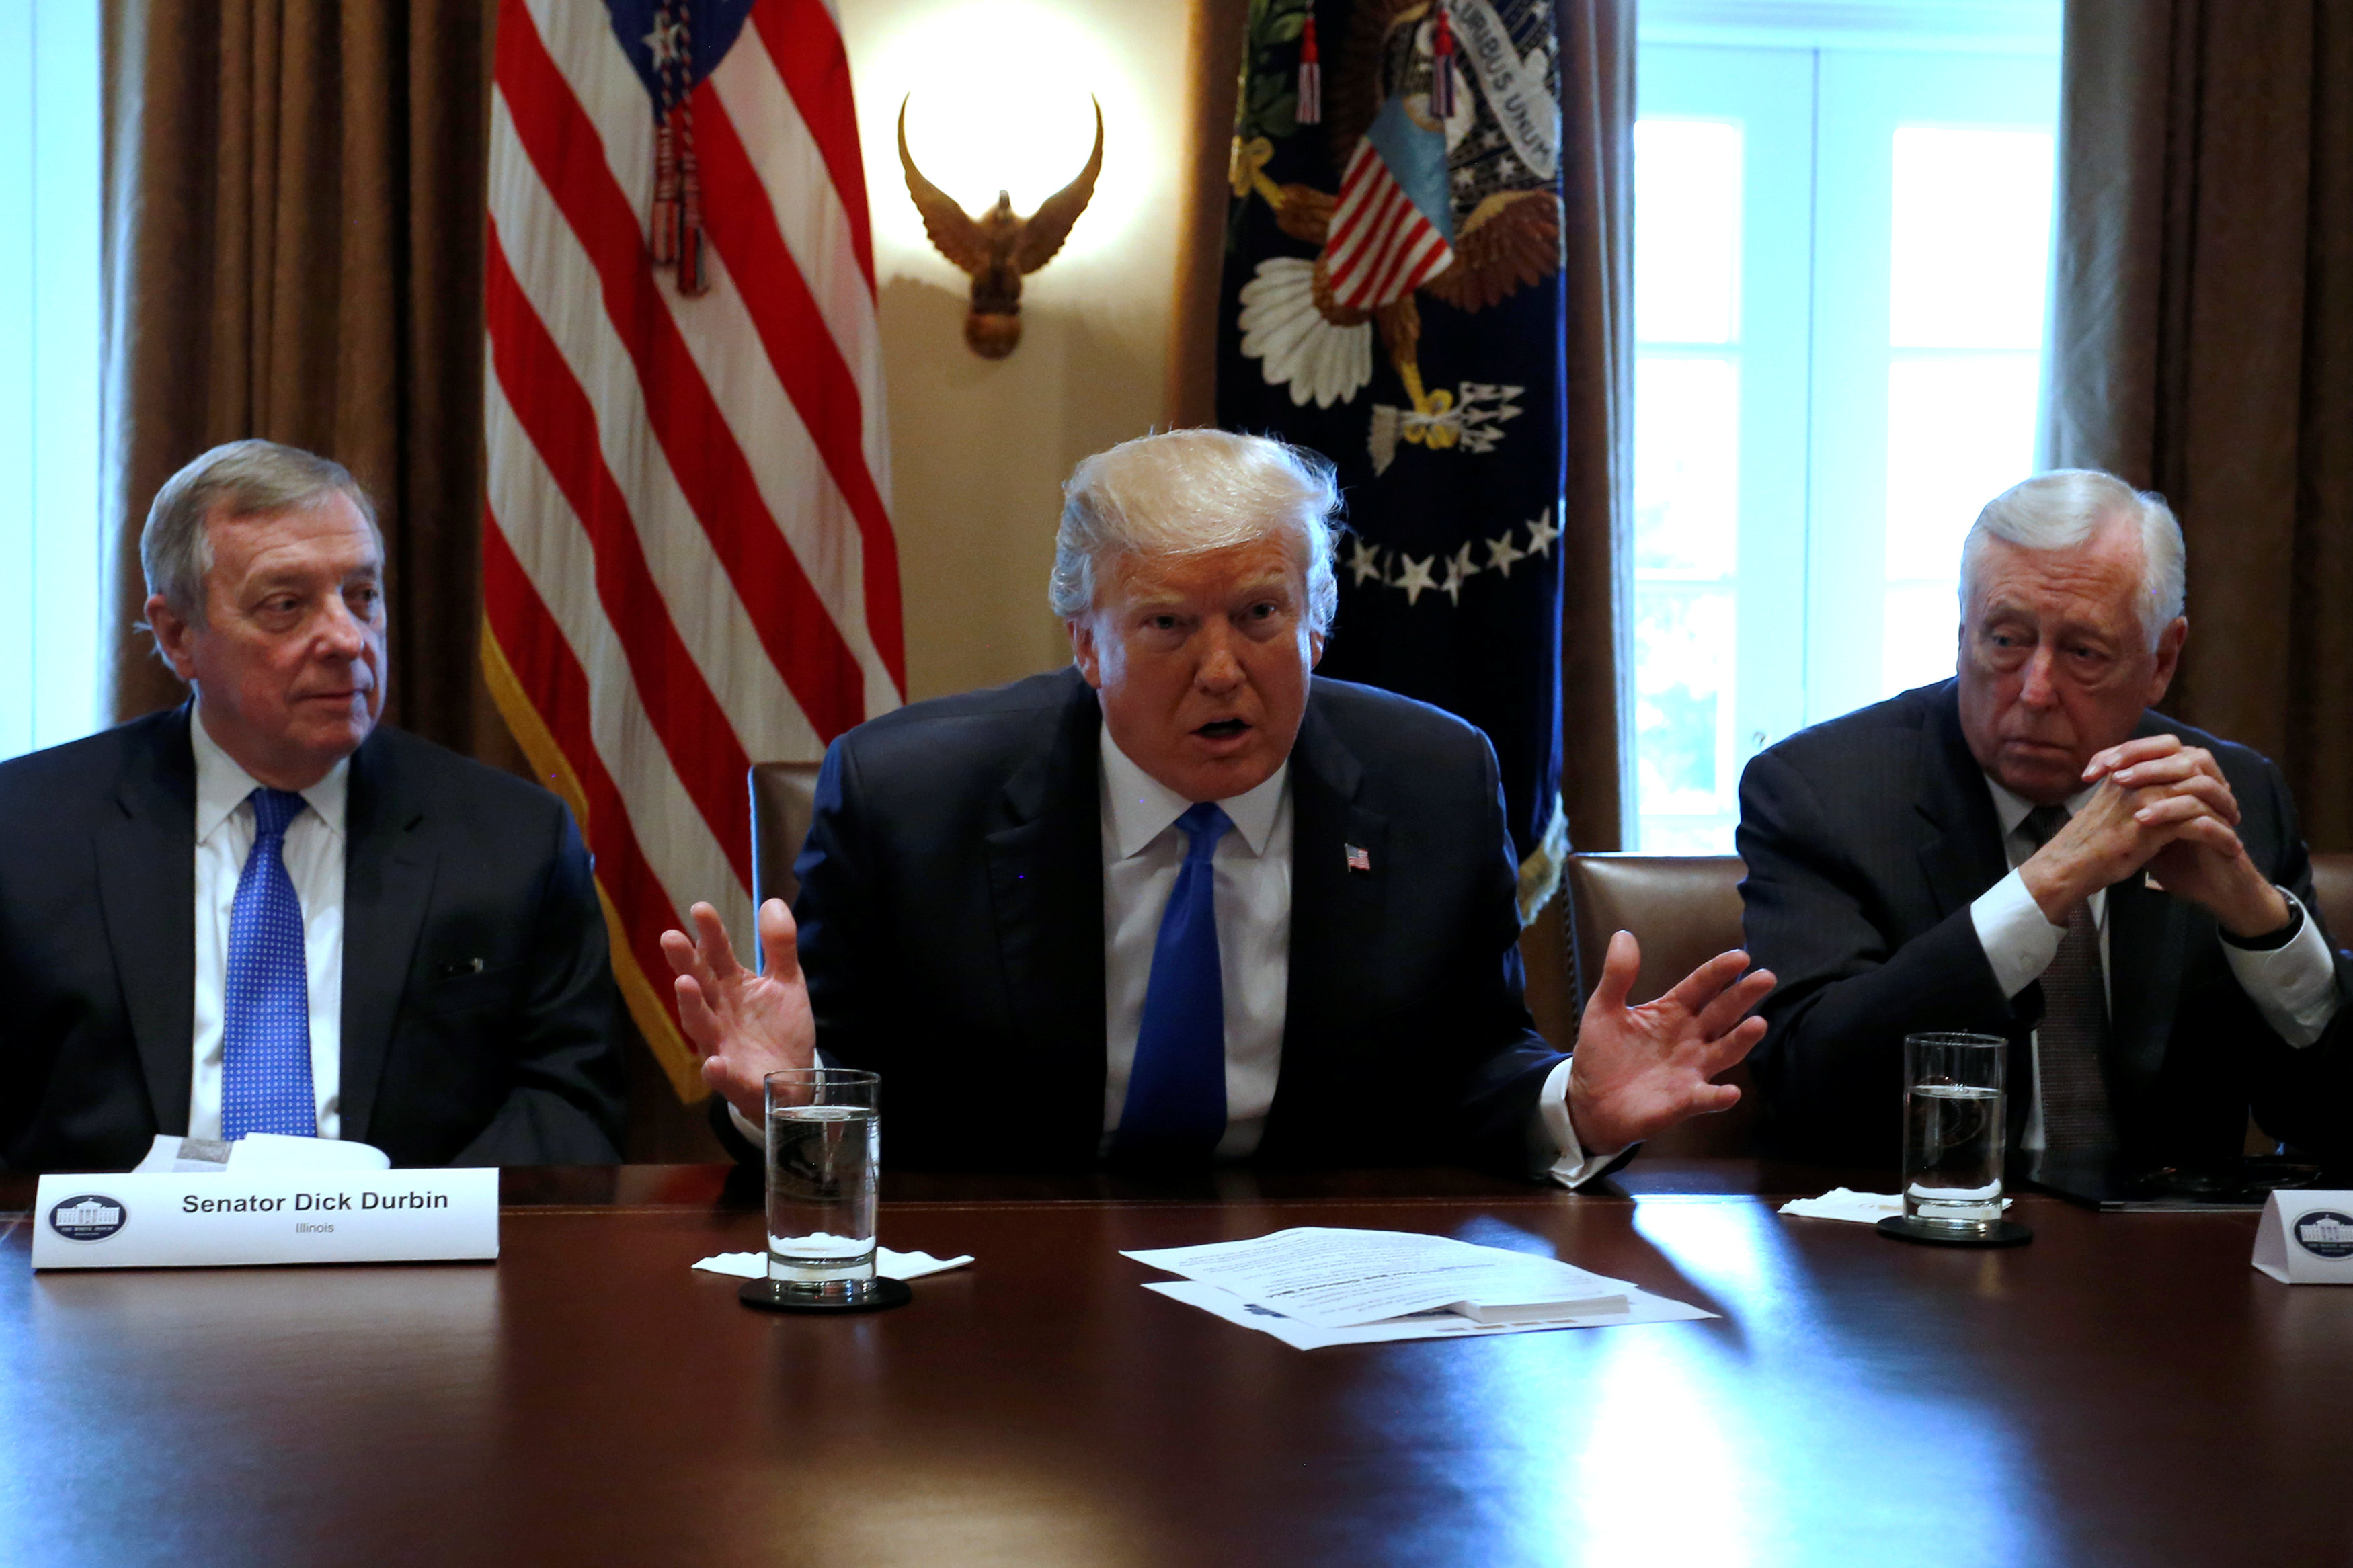 U.S. President Donald Trump, flanked by U.S. Senator Dick Durbin (D-IL) and Representative Steny Hoyer (D-MD), holds a bipartisan meeting with legislators on immigration reform at the White House in Washington, U.S. January 9, 2018. REUTERS/Jonathan